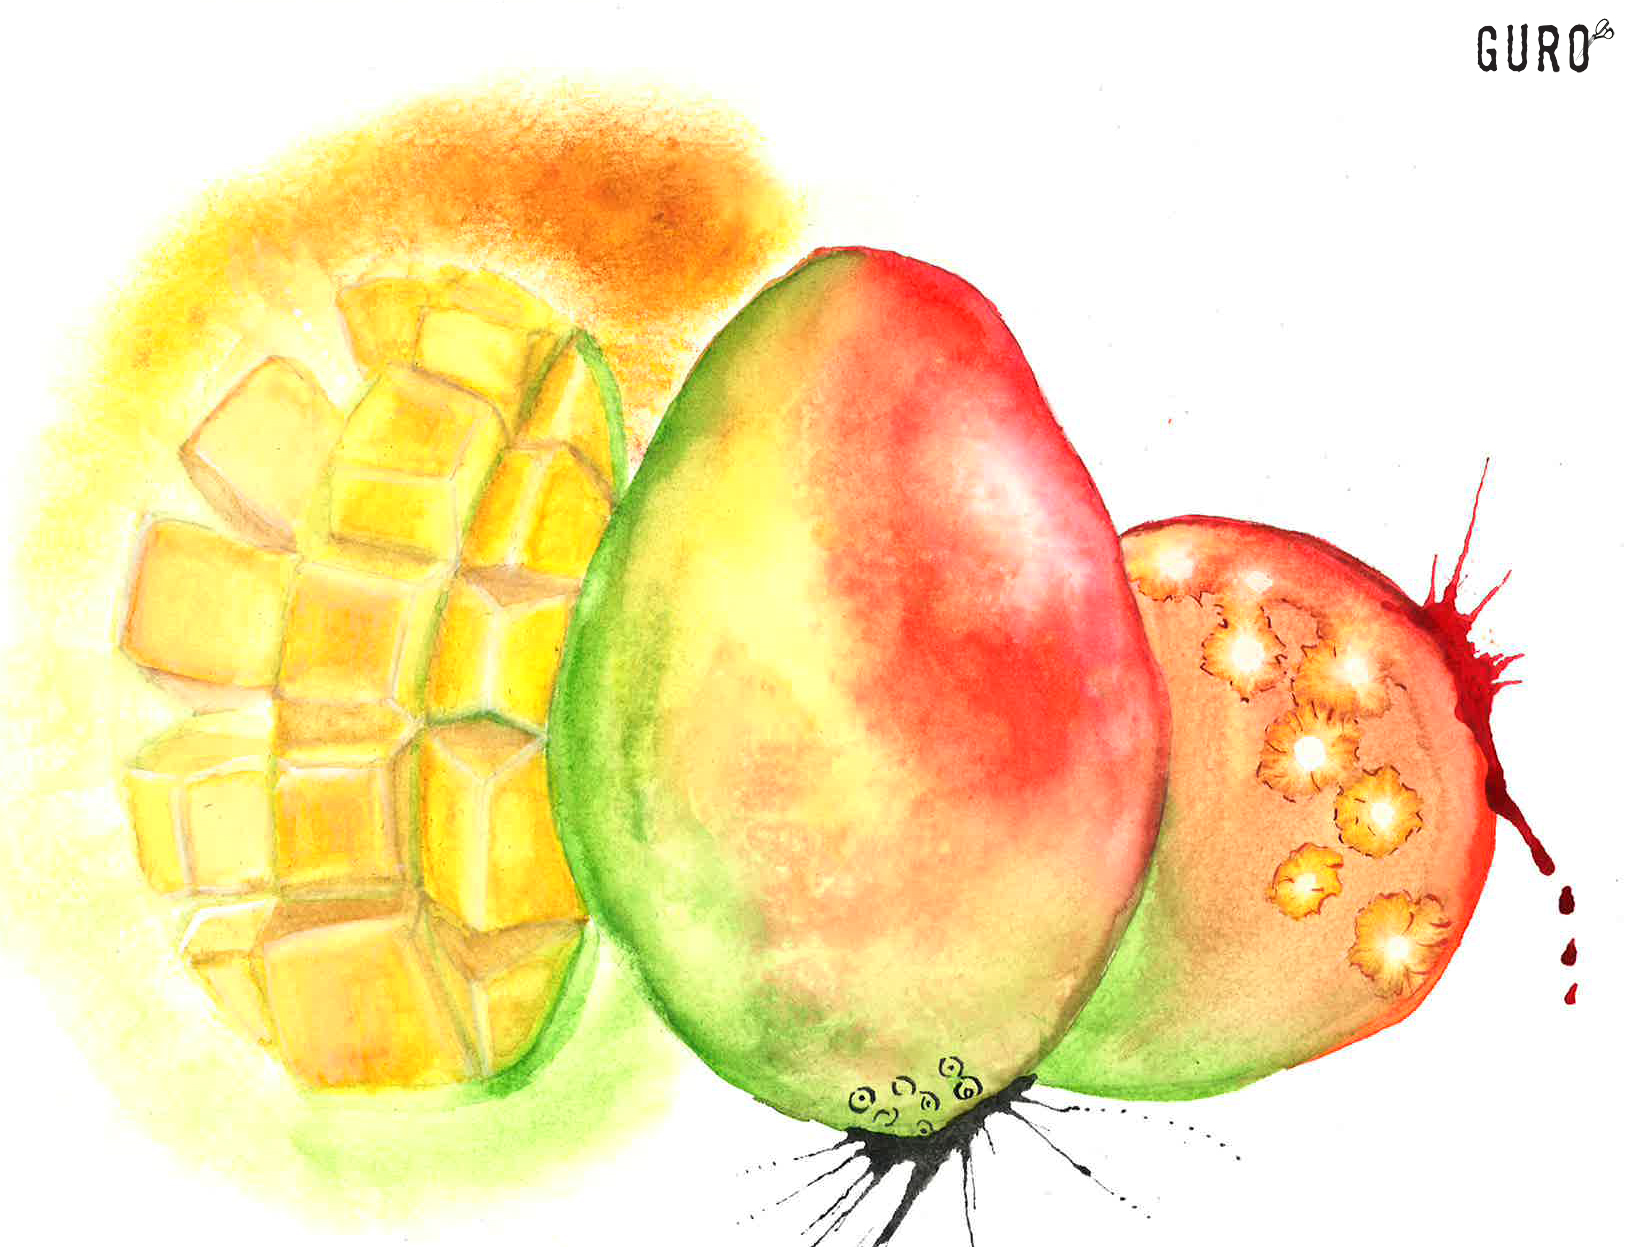 Rasta Mango - Watercolor on cold press paper 11x15